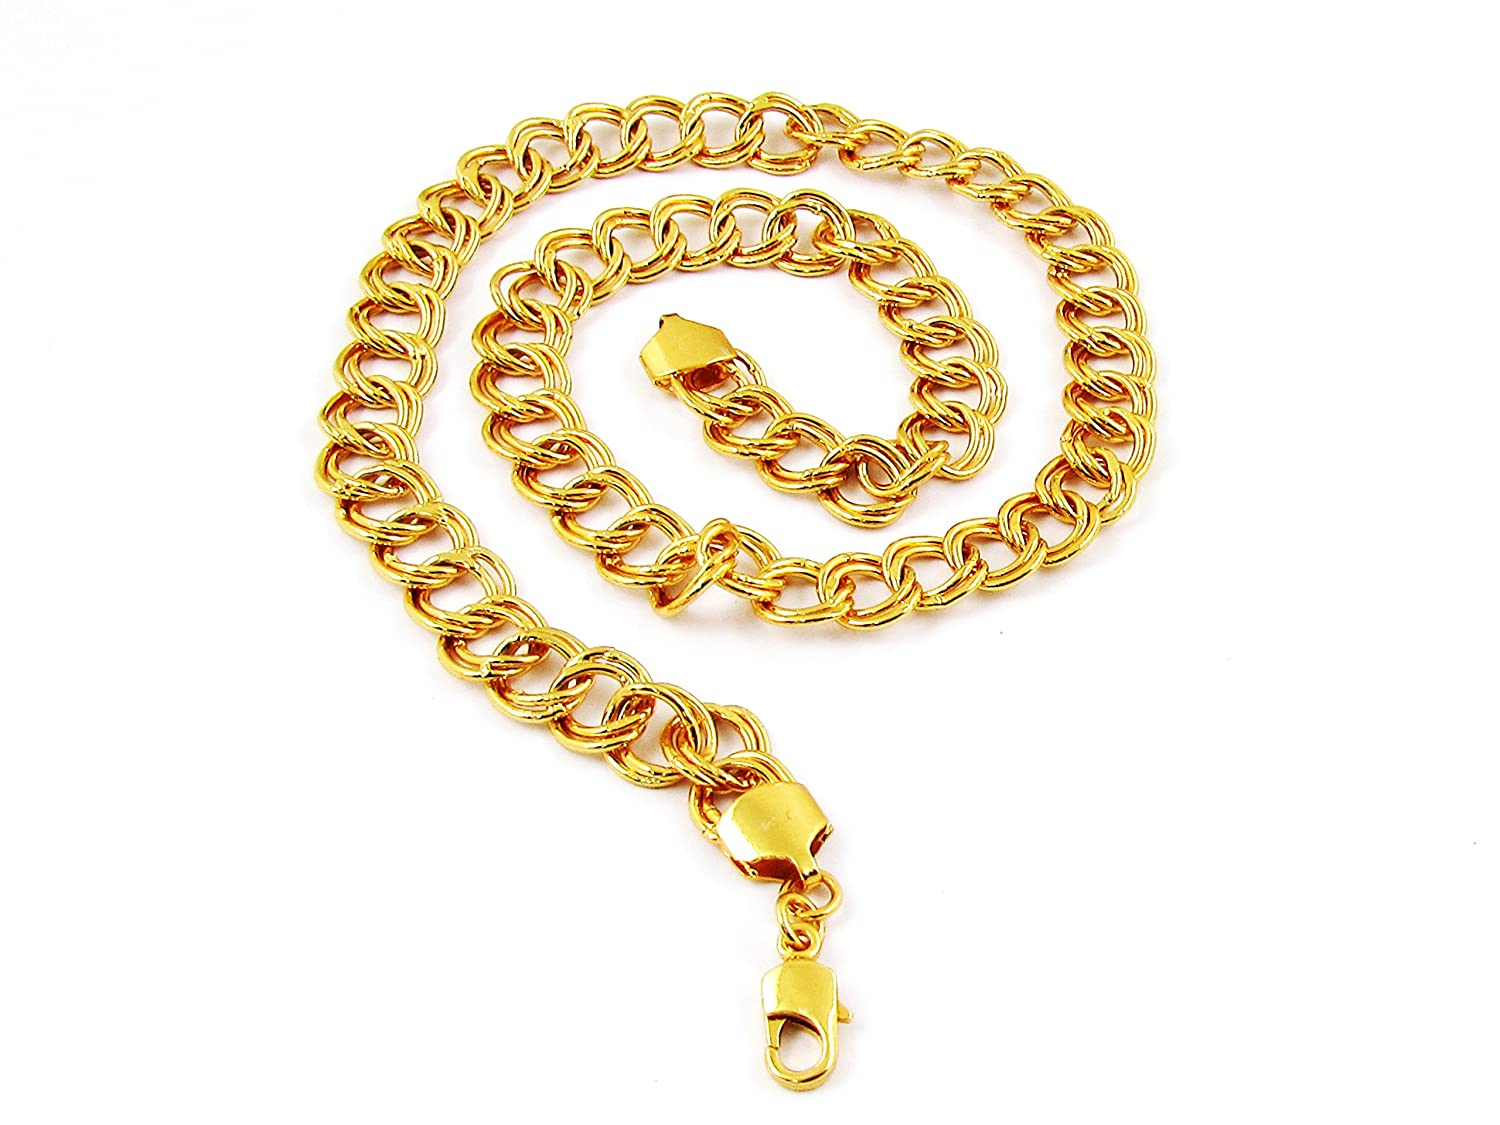 b1aba00359a3d Buy gemshop Factorywala Gold Alloy Necklace Chain for Men Online at Low  Prices in India